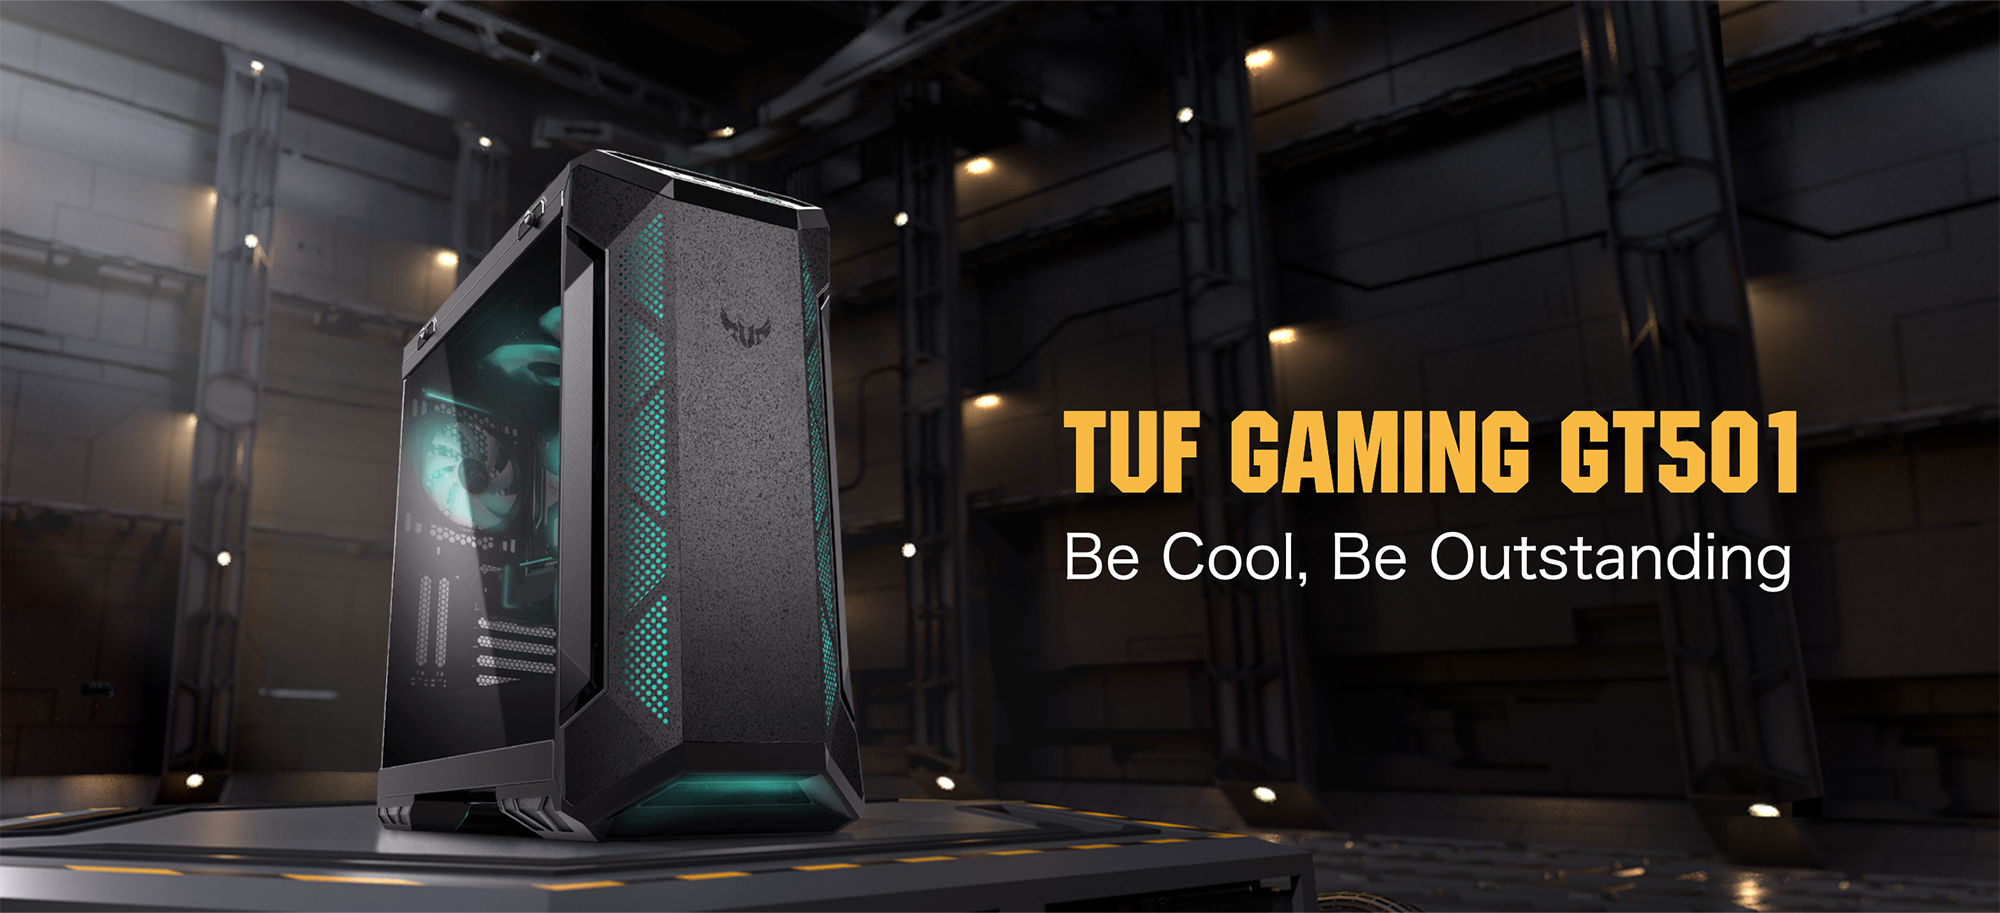 TUF Gaming GT501 Be Cool, Be Outstanding